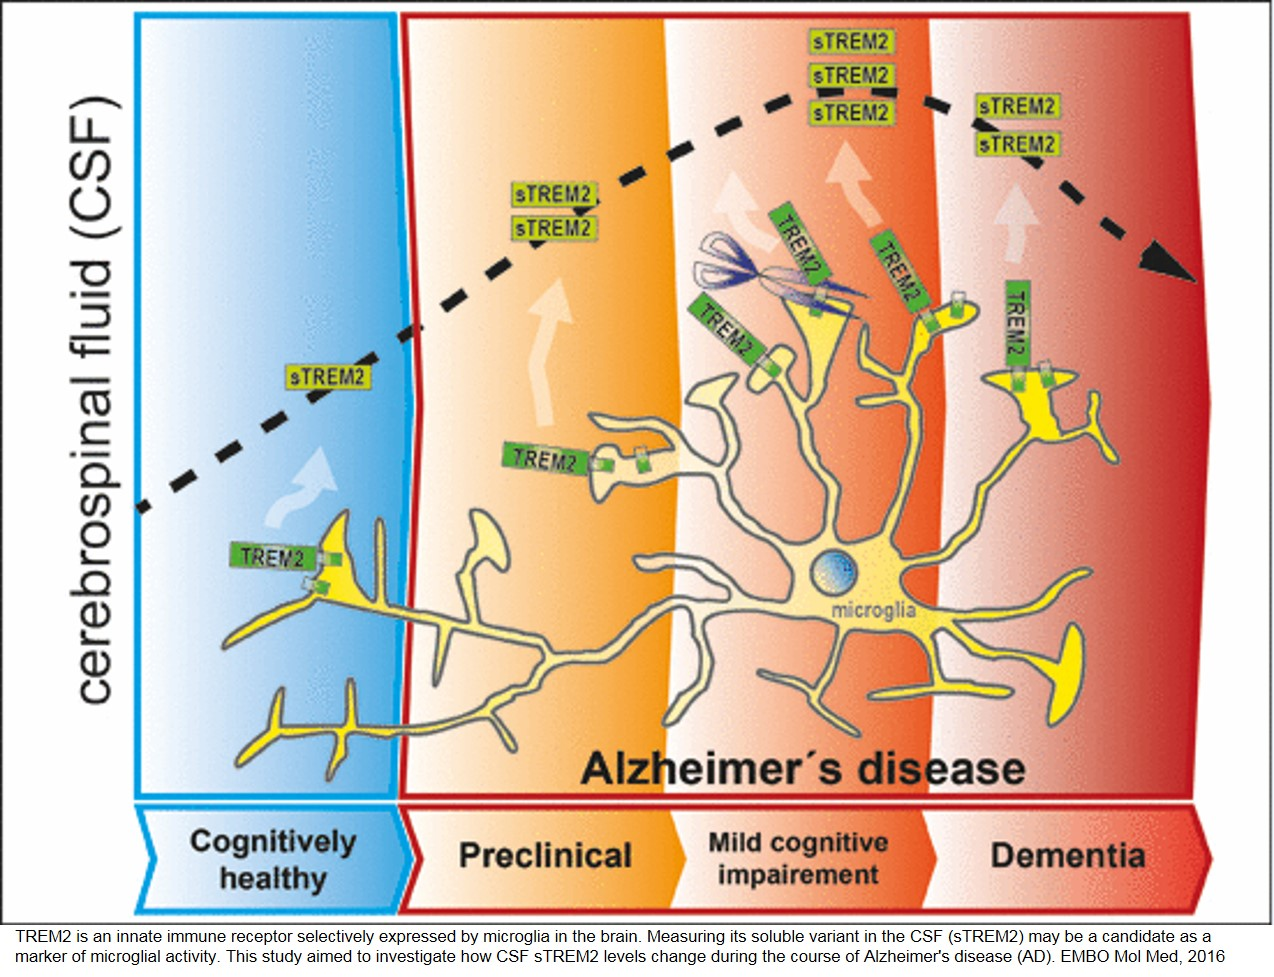 alzheimer's disease early biomarker defined – science mission